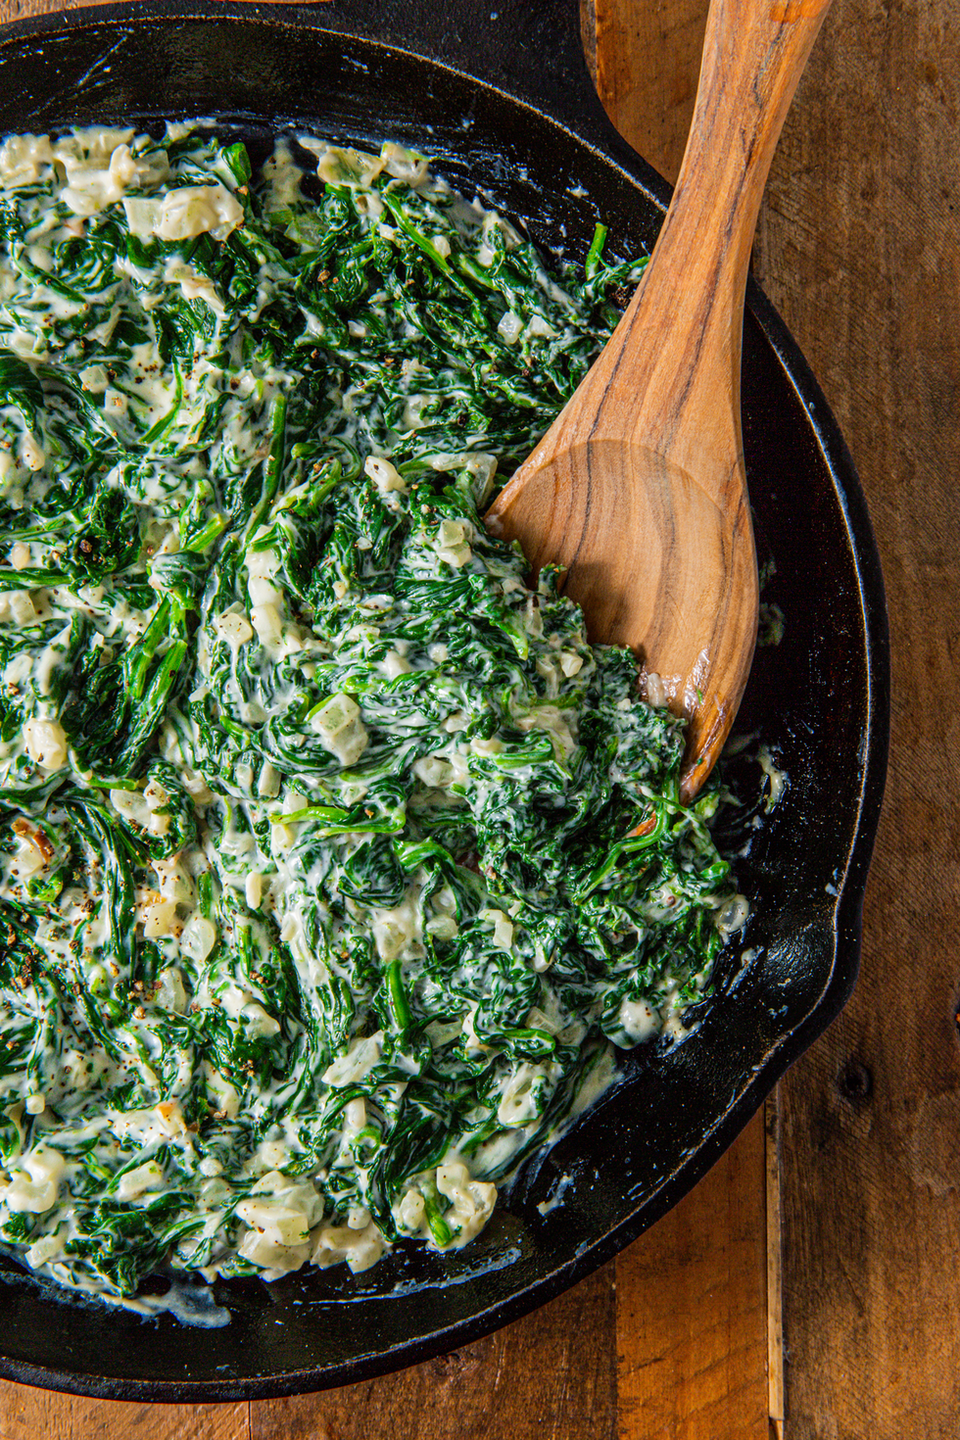 """<p>Creamed spinach is a simple side dish that is also the perfect way to use up any dying spinach. The creaminess will make you forget you're eating spinach and make everyone a fan. It seems like a lot of spinach, but it will boil down into almost nothing so don't skimp on it.</p><p>Get the <a href=""""https://www.delish.com/uk/cooking/recipes/a30425708/easy-creamed-spinach-recipe/"""" rel=""""nofollow noopener"""" target=""""_blank"""" data-ylk=""""slk:Creamed Spinach"""" class=""""link rapid-noclick-resp"""">Creamed Spinach</a> recipe.</p>"""